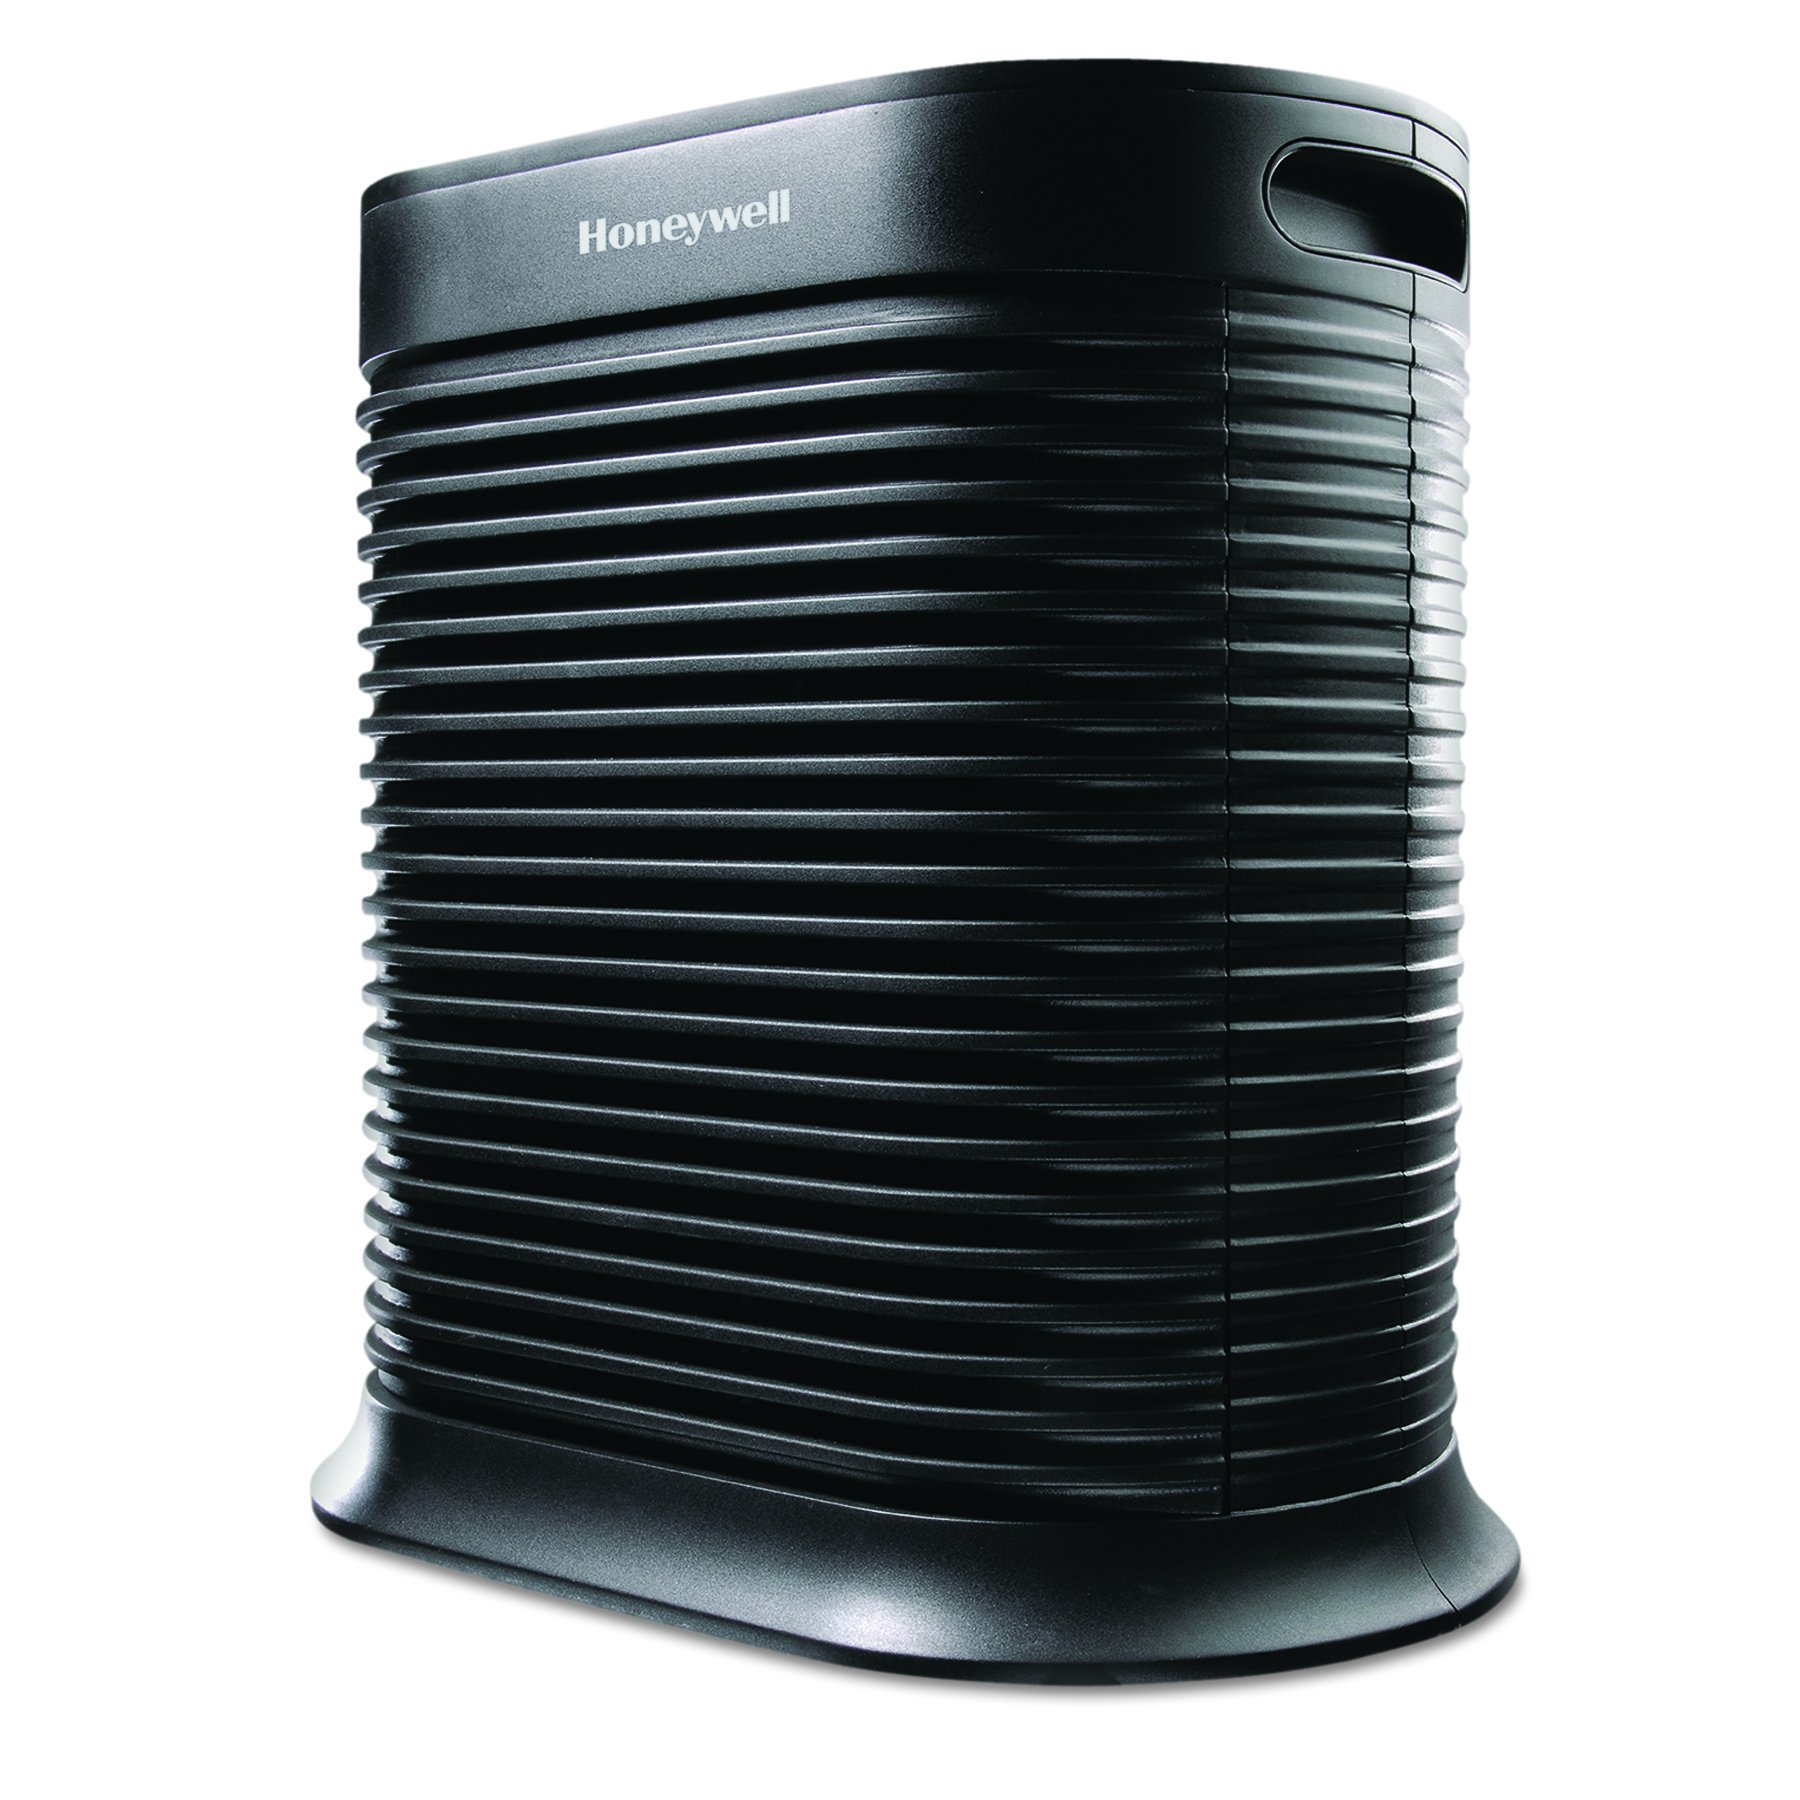 Honeywell True HEPA Allergen Remover, 465 sq. Ft, HPA300 by Honeywell